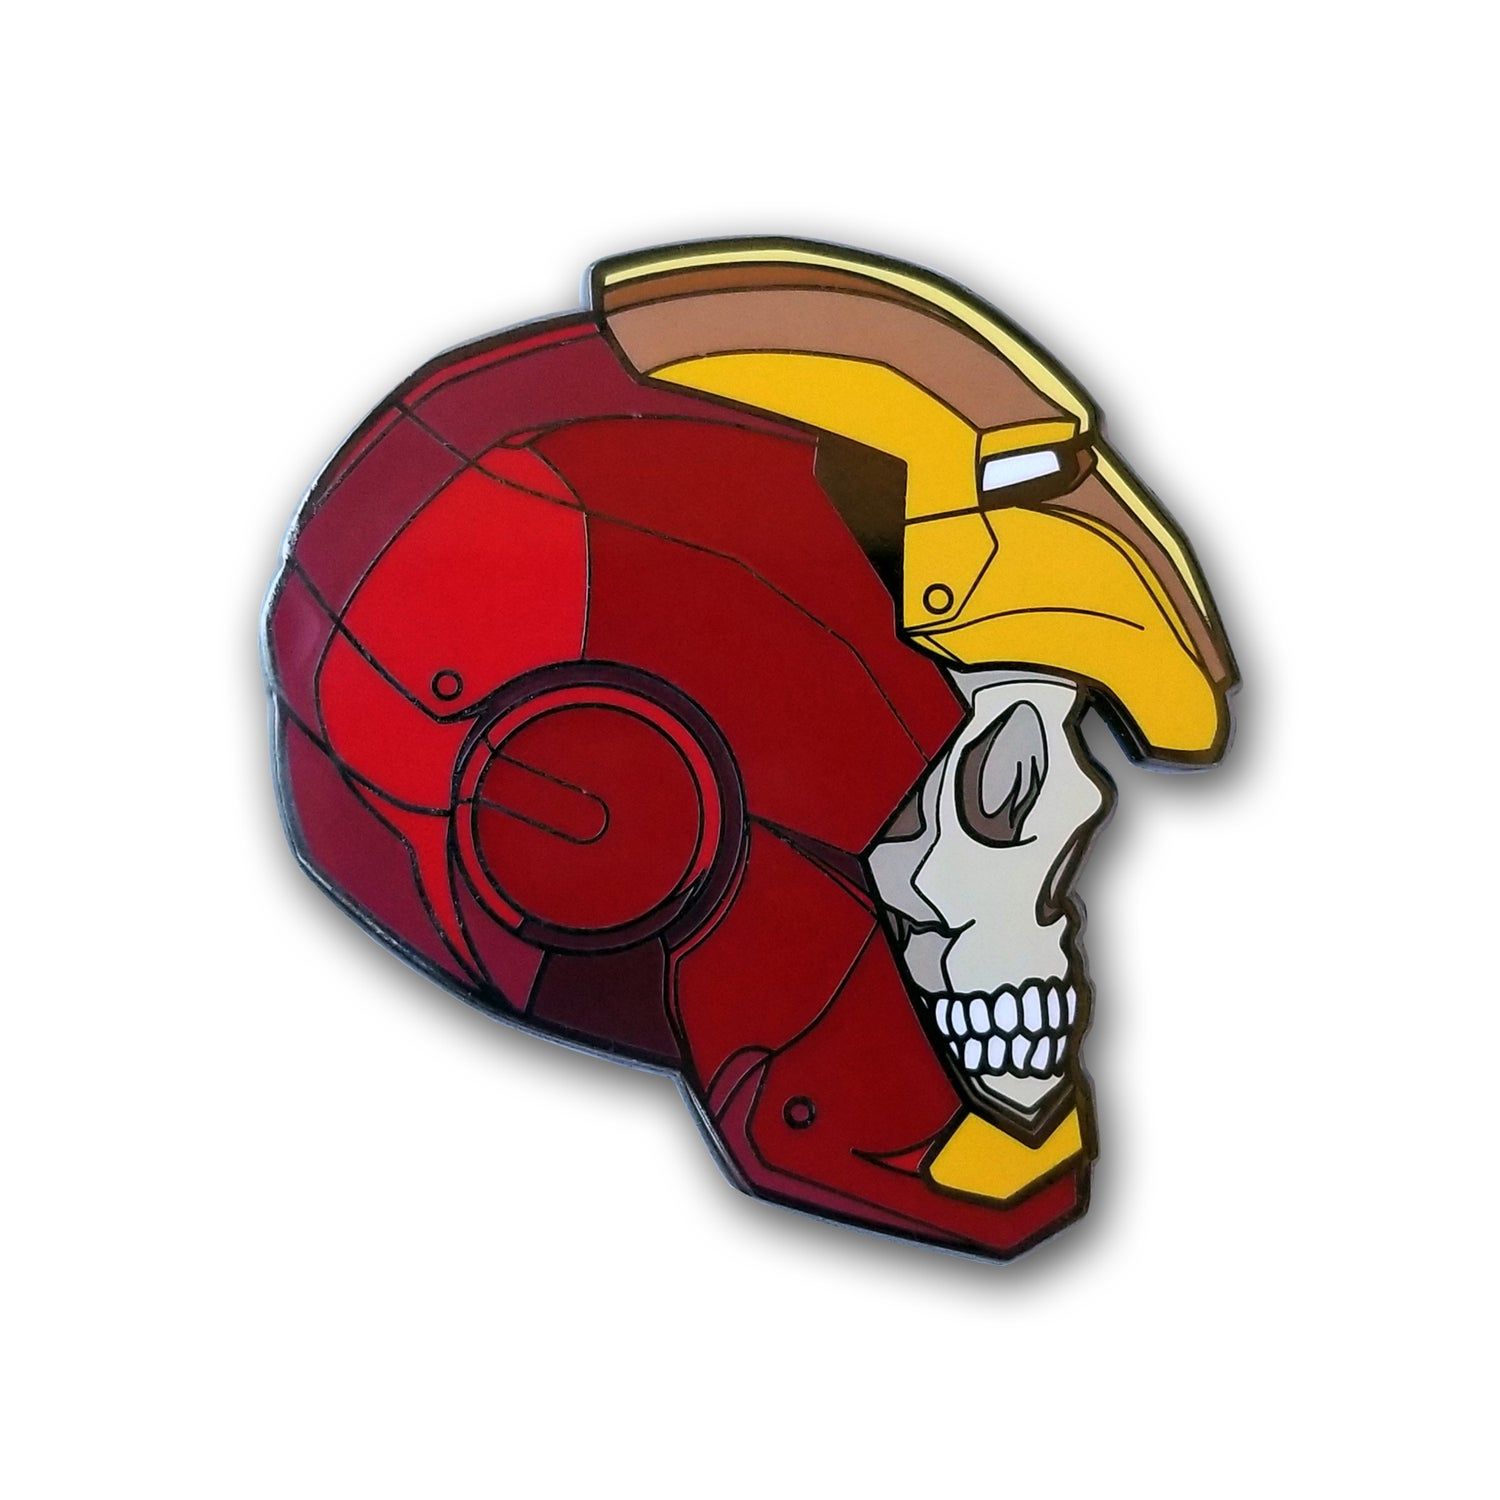 Image of IronSkull/CaptainSkull